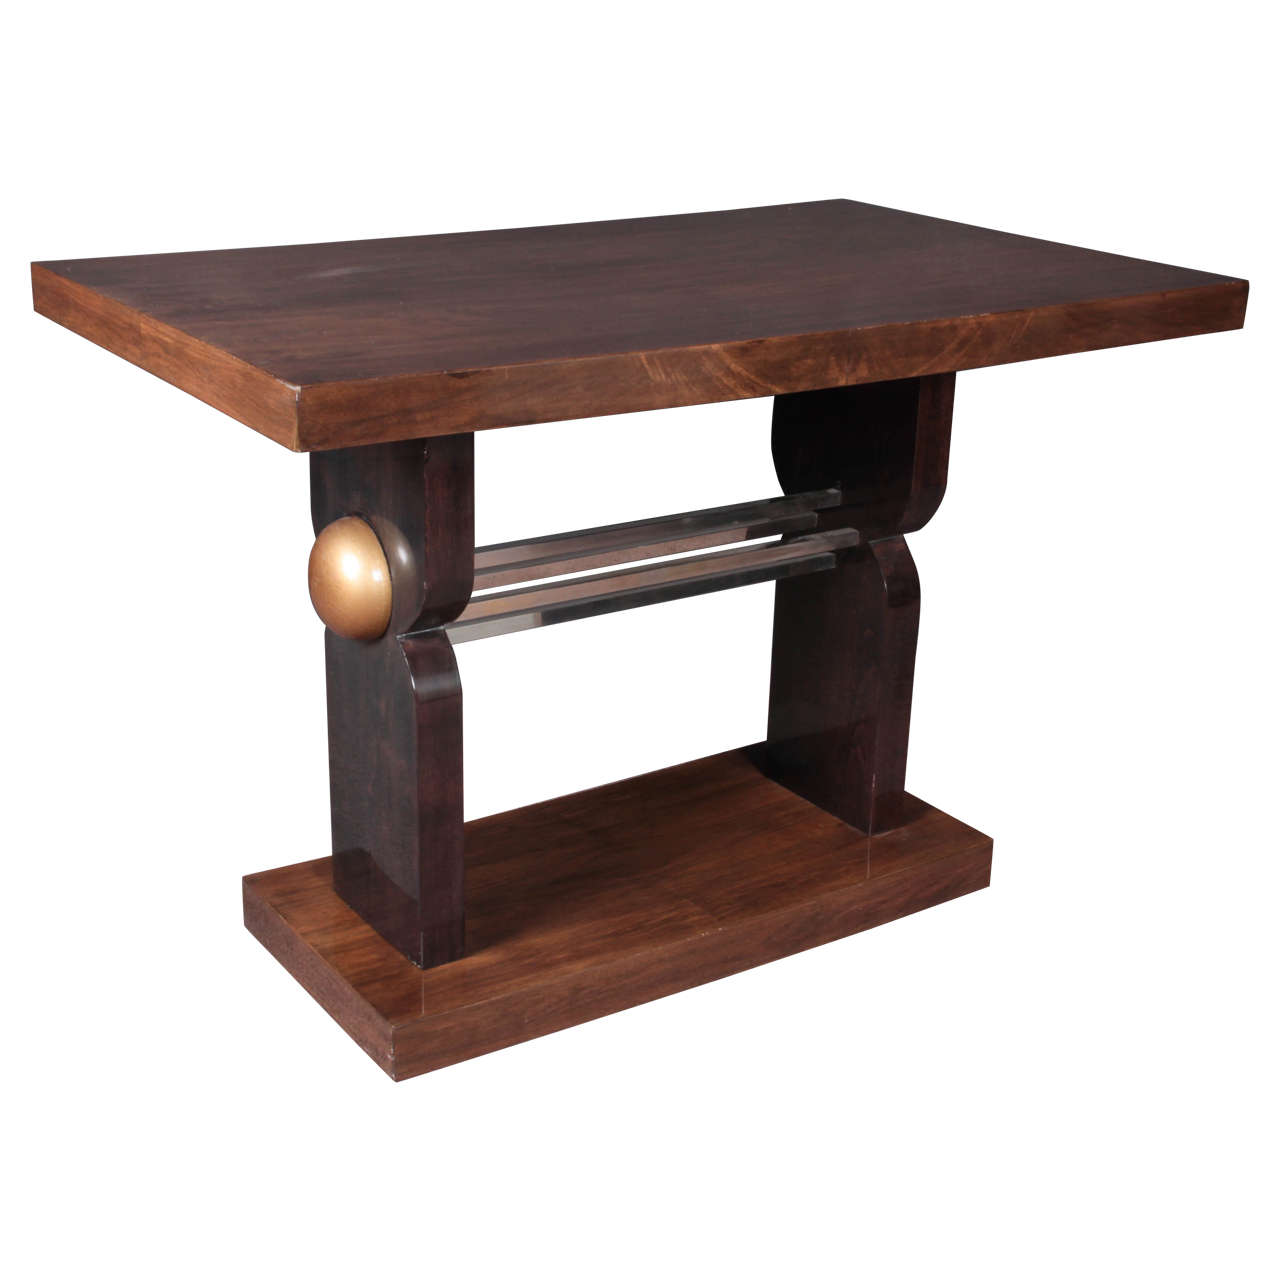 French Art Deco Two-Tone Walnut Table with Nickeled Mounts